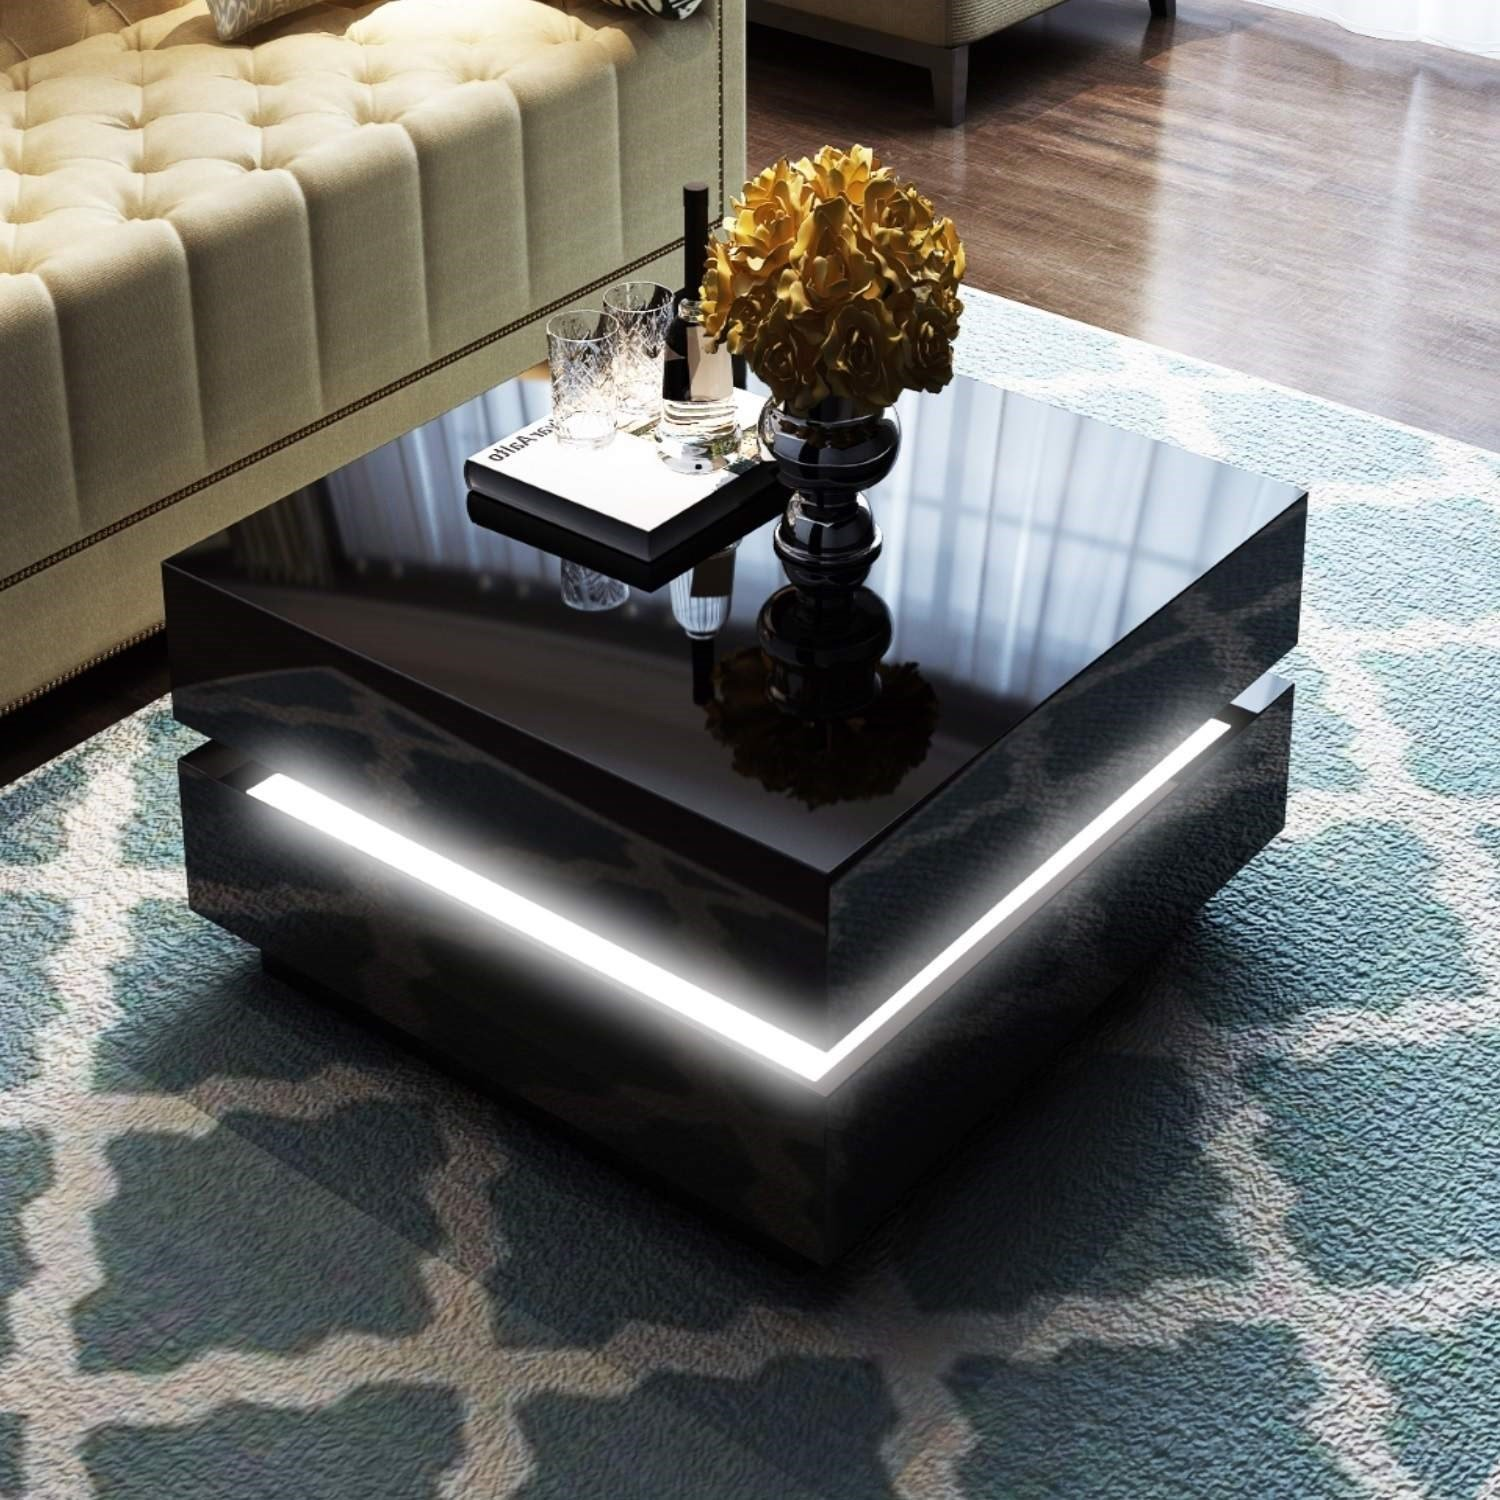 Tiffany Black High Gloss Cubic LED Coffee Table Amazon